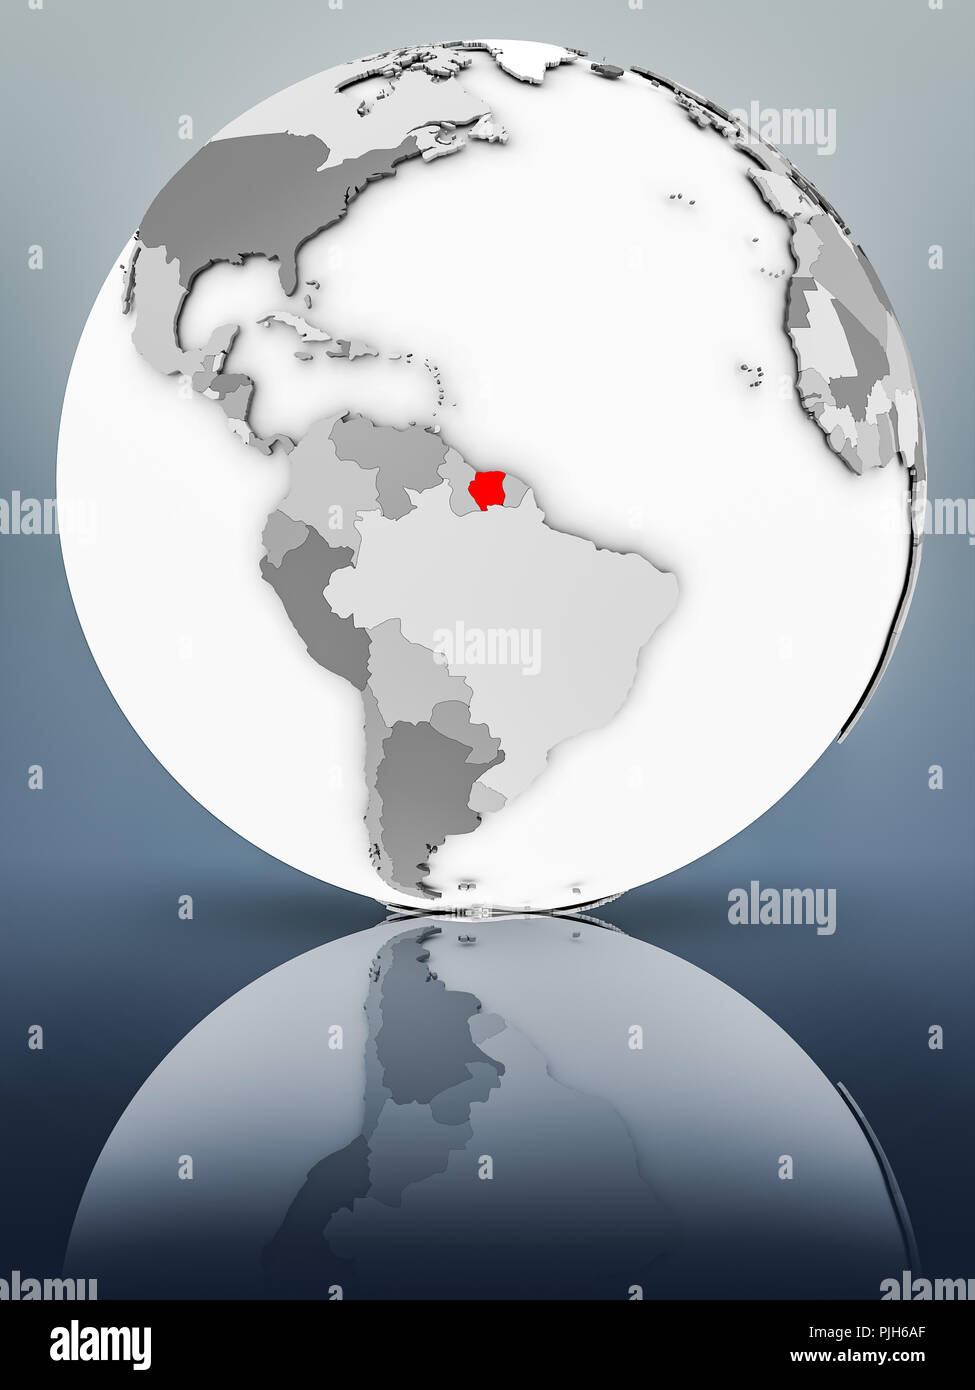 Suriname on simple gray globe on shiny surface. 3D illustration. - Stock Image